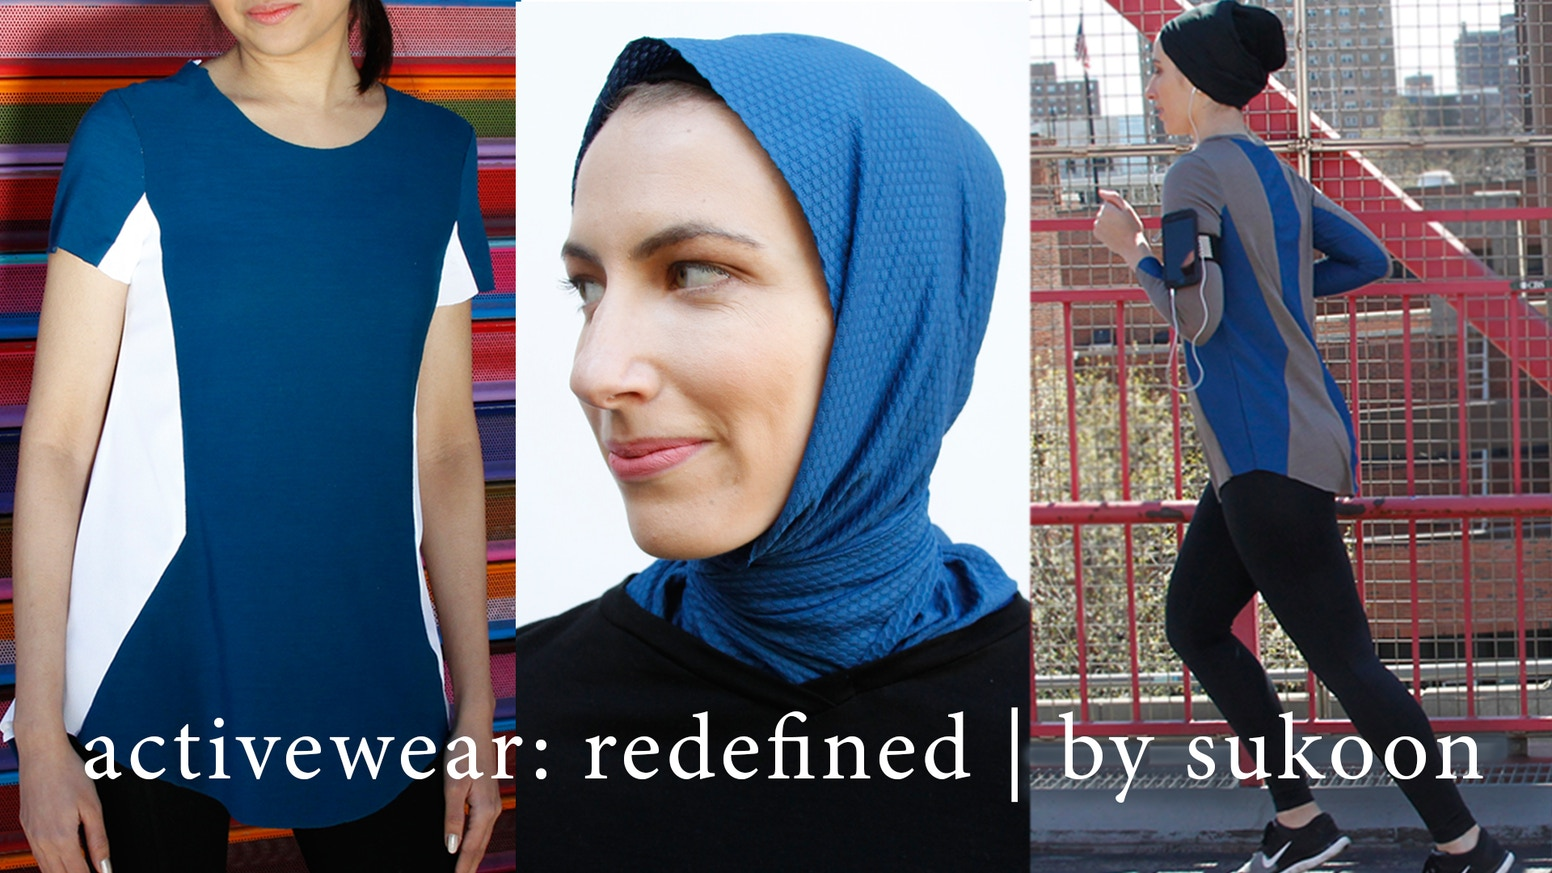 Sukoon activewear challenges the norm by introducing hijabs and shirts that are high-performing, modest, and on trend.